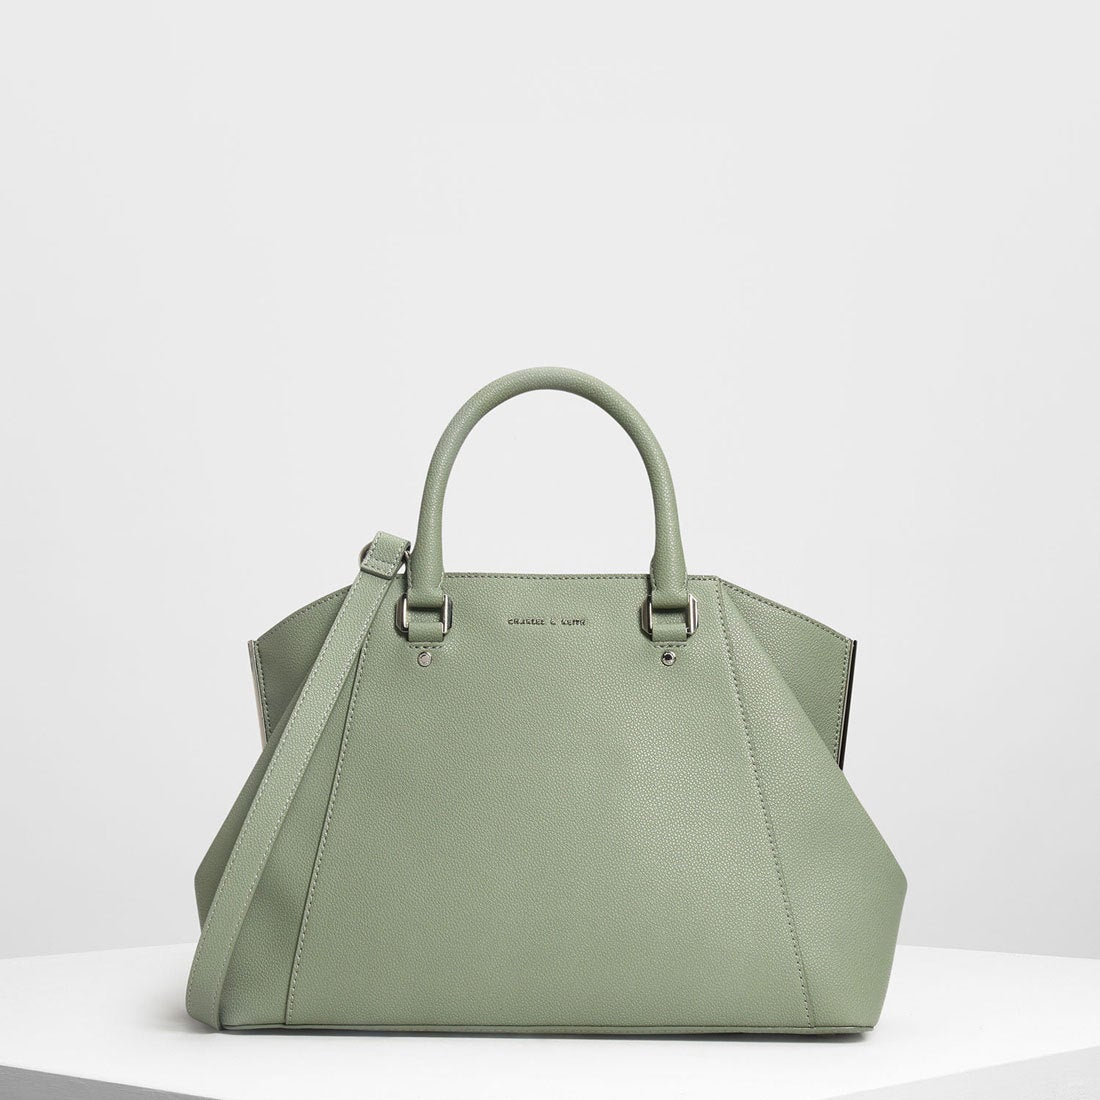 charles keith ストラクチャー シティバッグ structured city bag